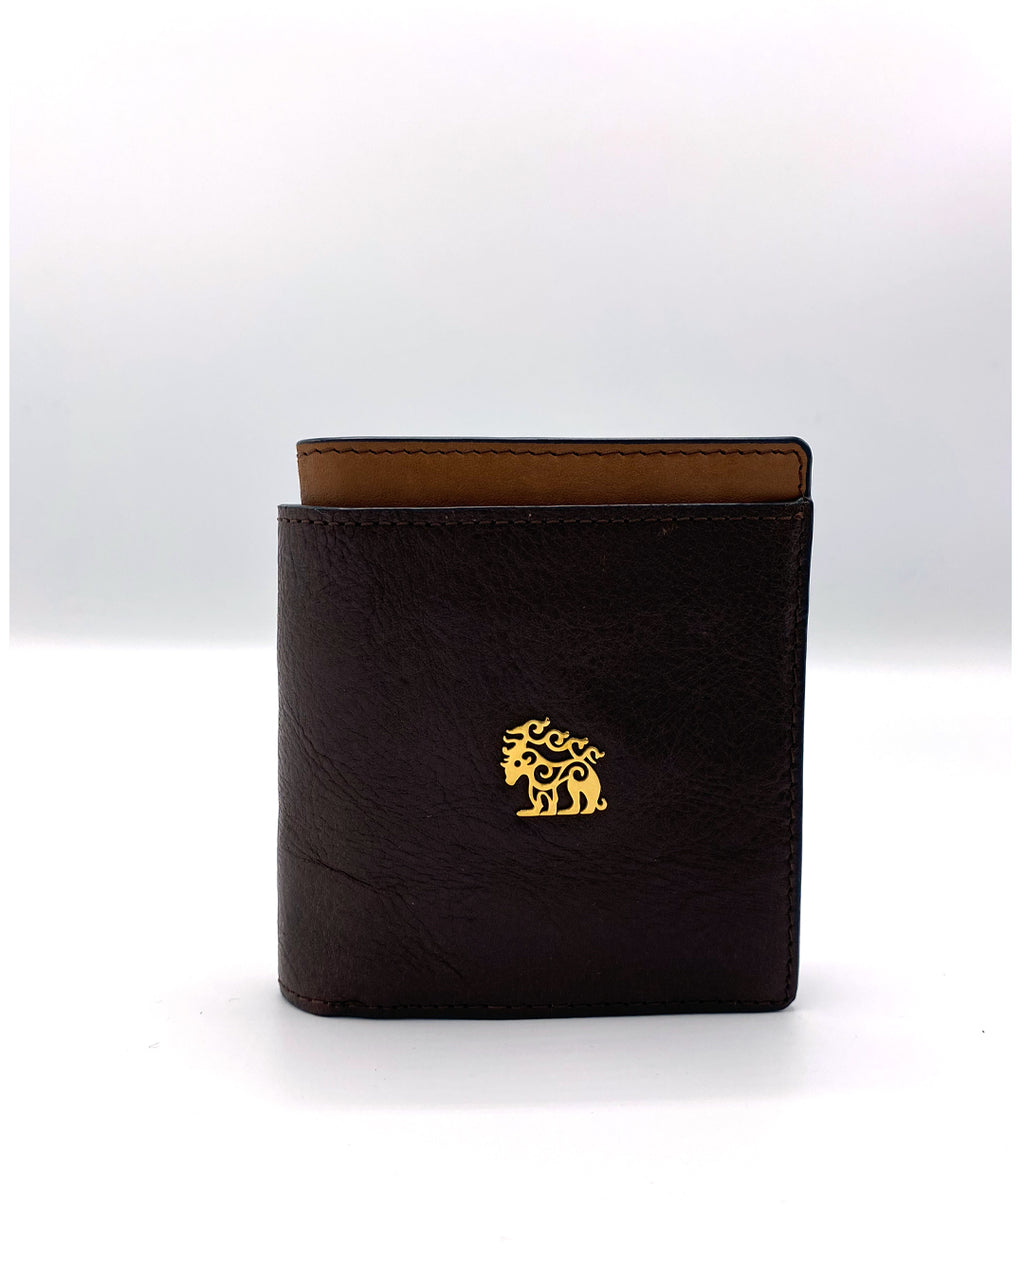 Dark Brown Leather Wallet by Maral